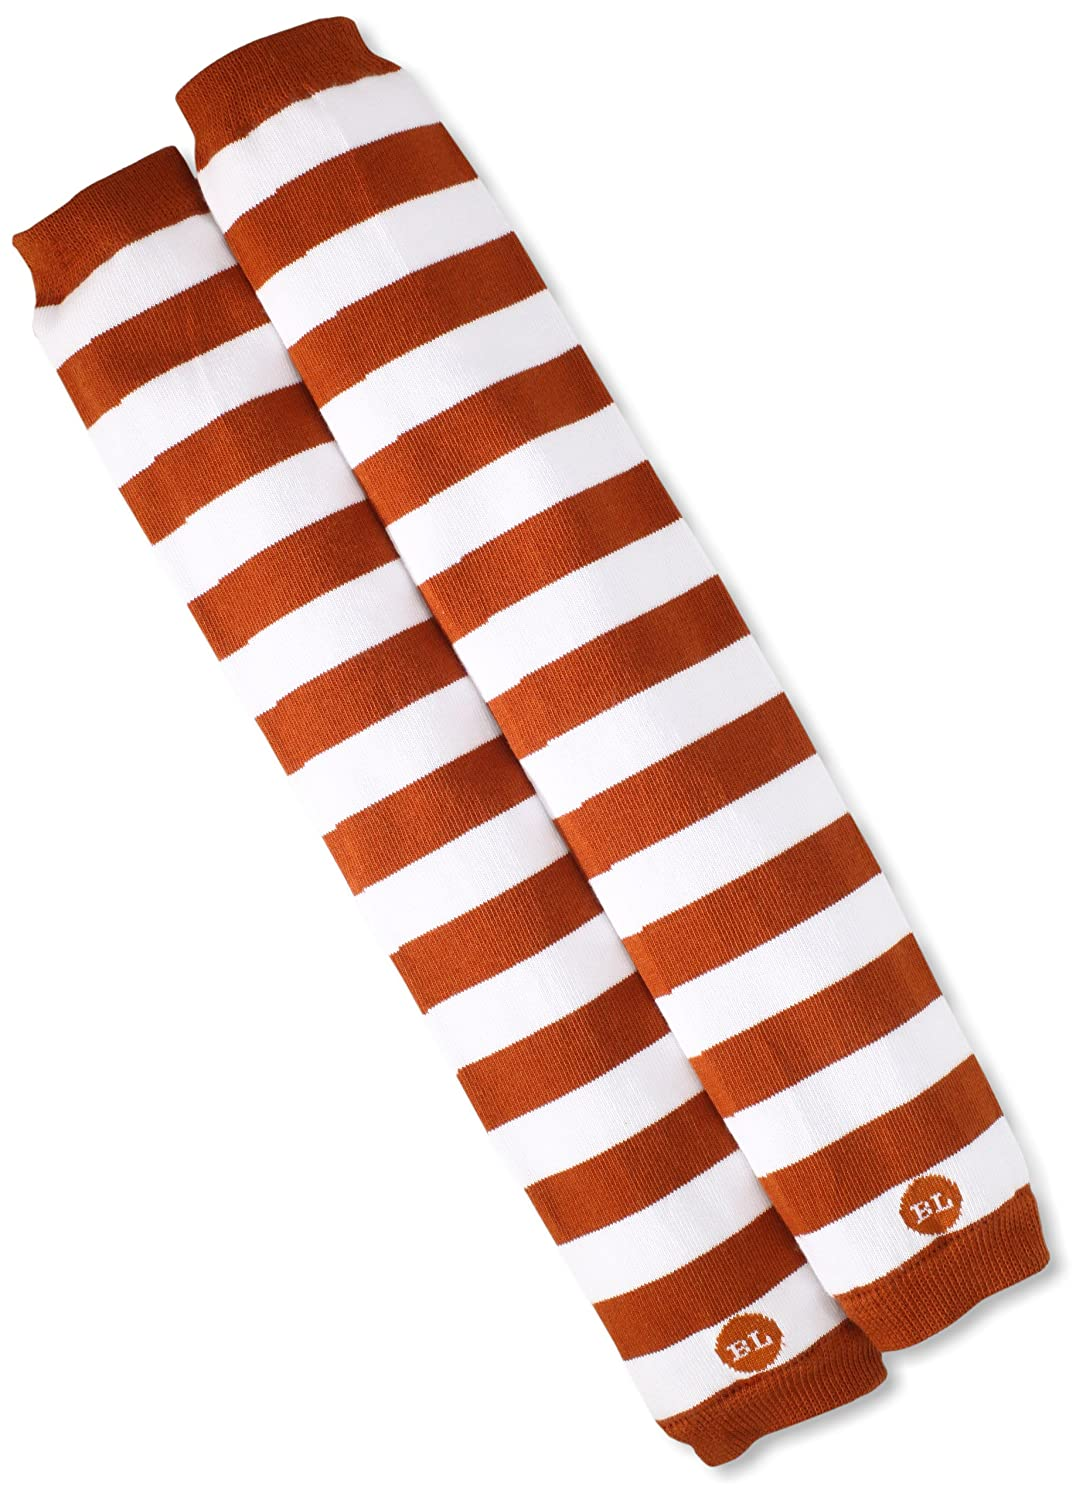 BabyLegs Unisex-Baby Infant Leg Warmers, Burnt Orange/White, One Size BL12-0135